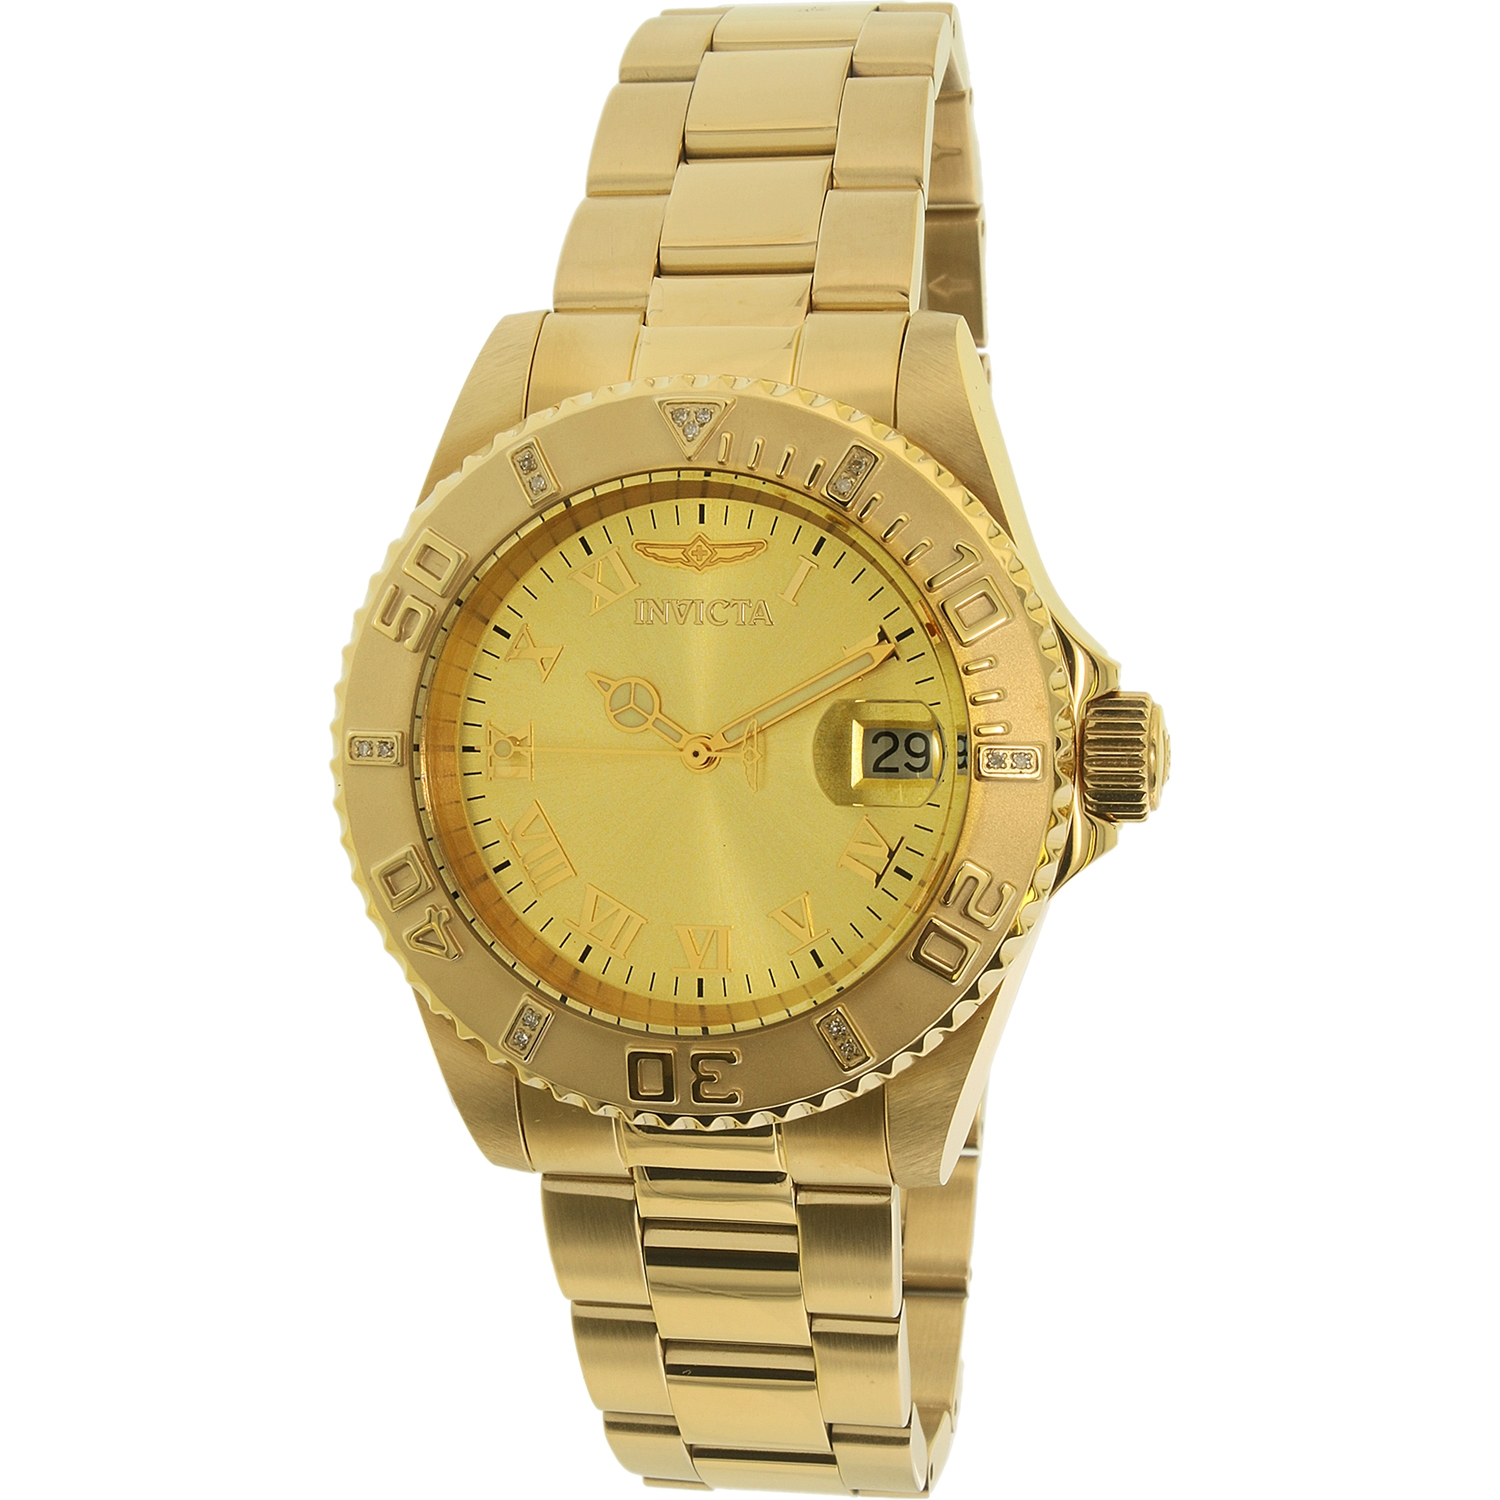 Invicta Men's Pro Diver 12820 Gold Stainless-Steel Quartz Dress Watch